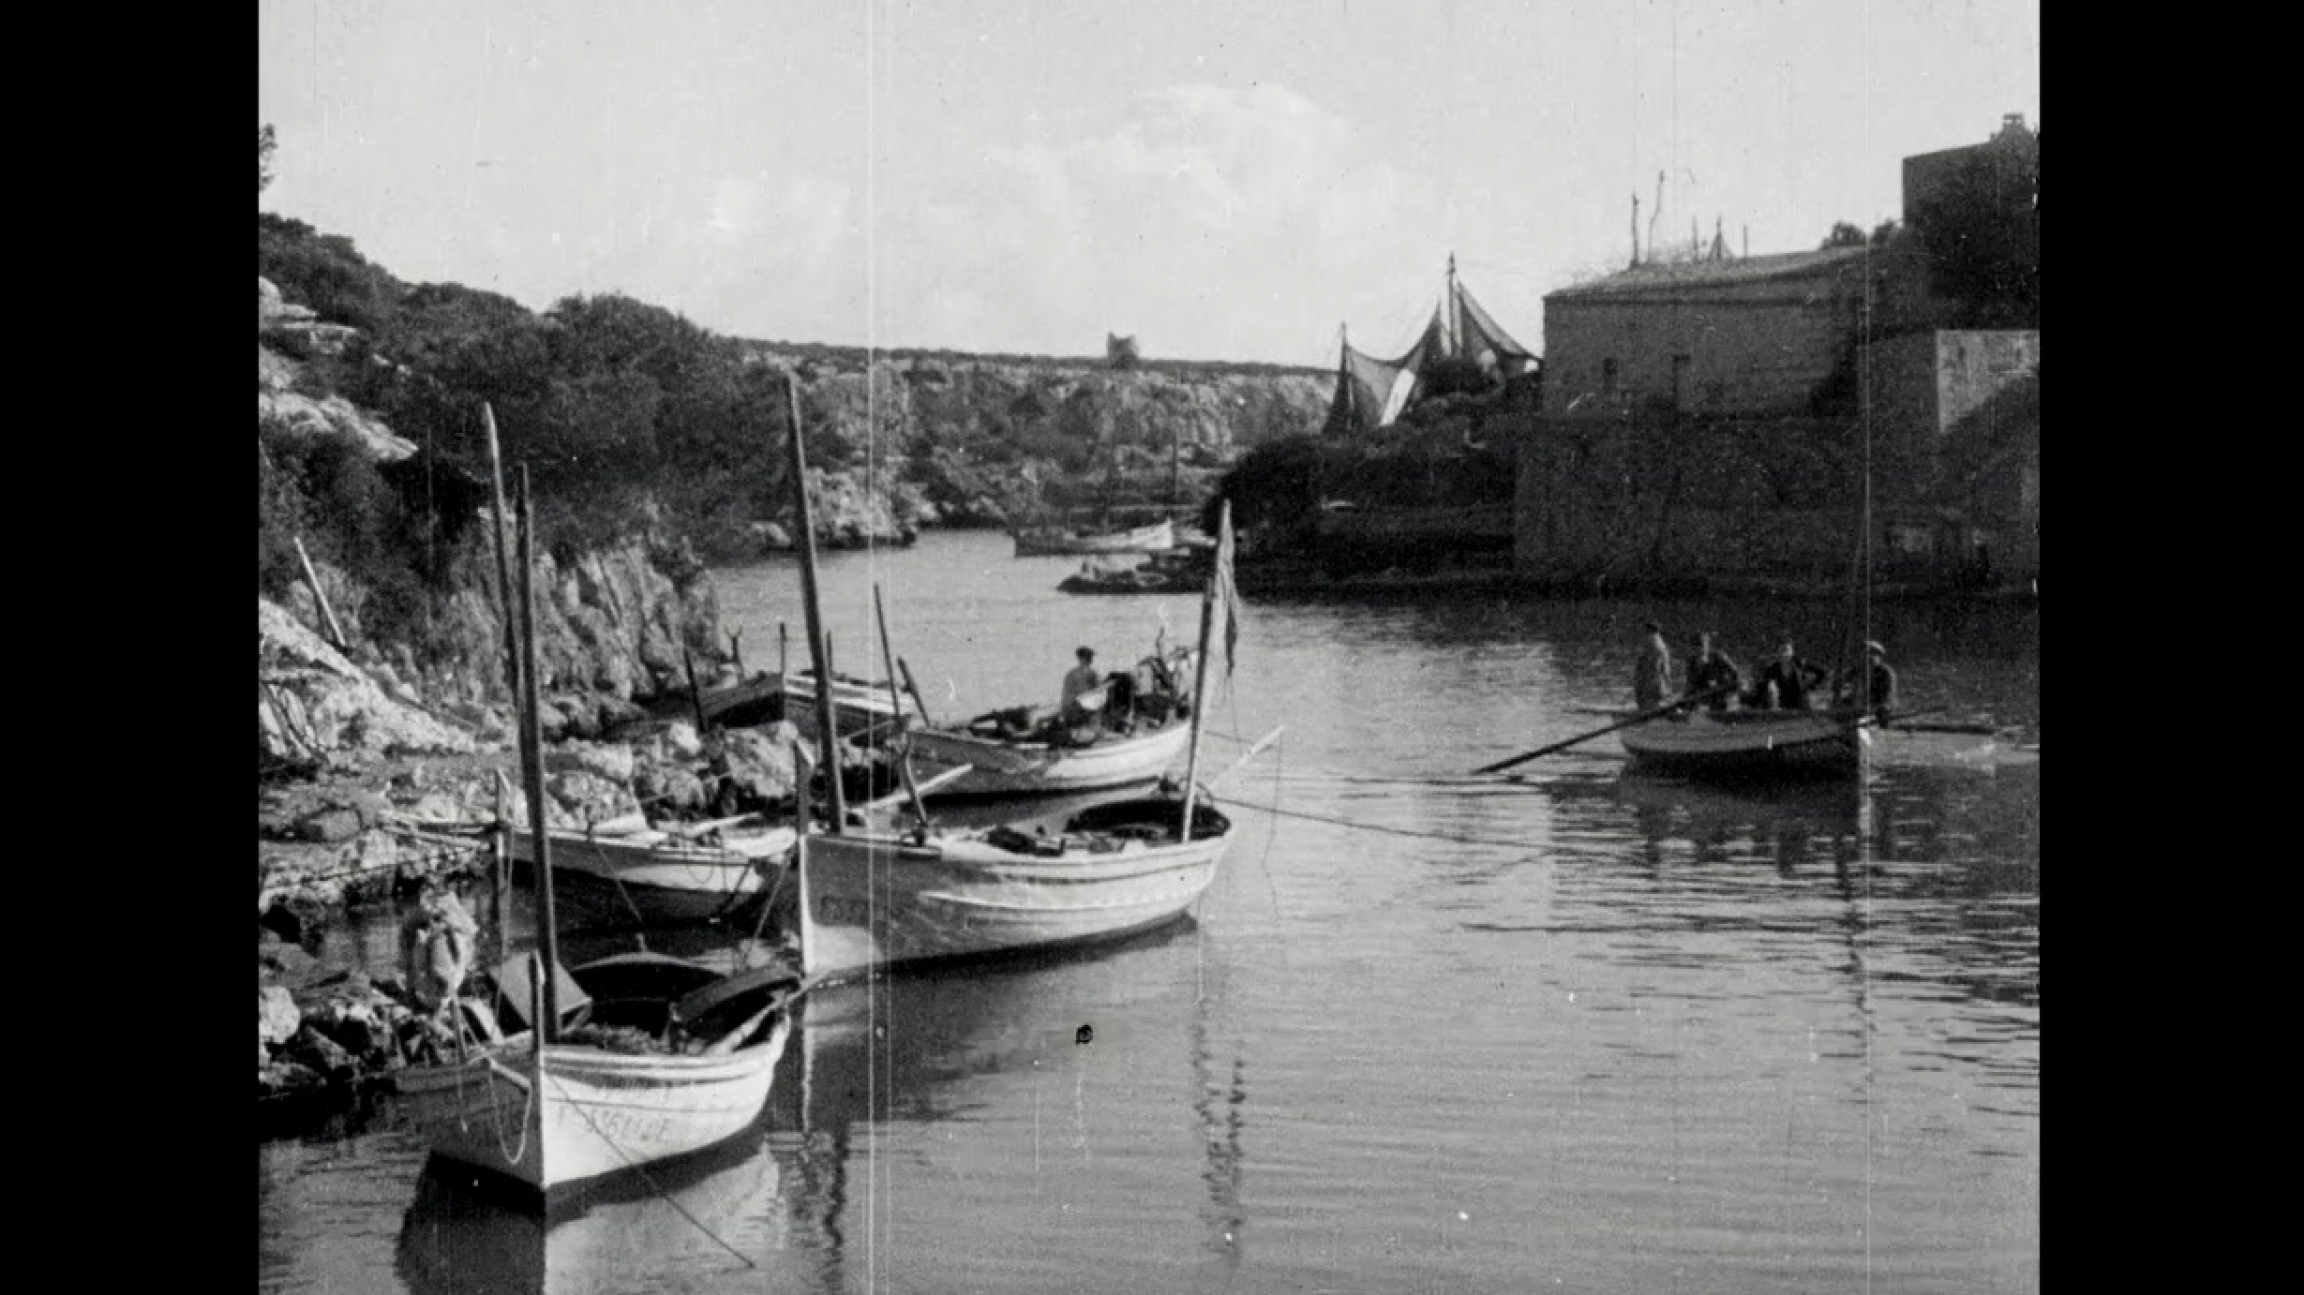 A seaside image of boats in Mallorca in black and white